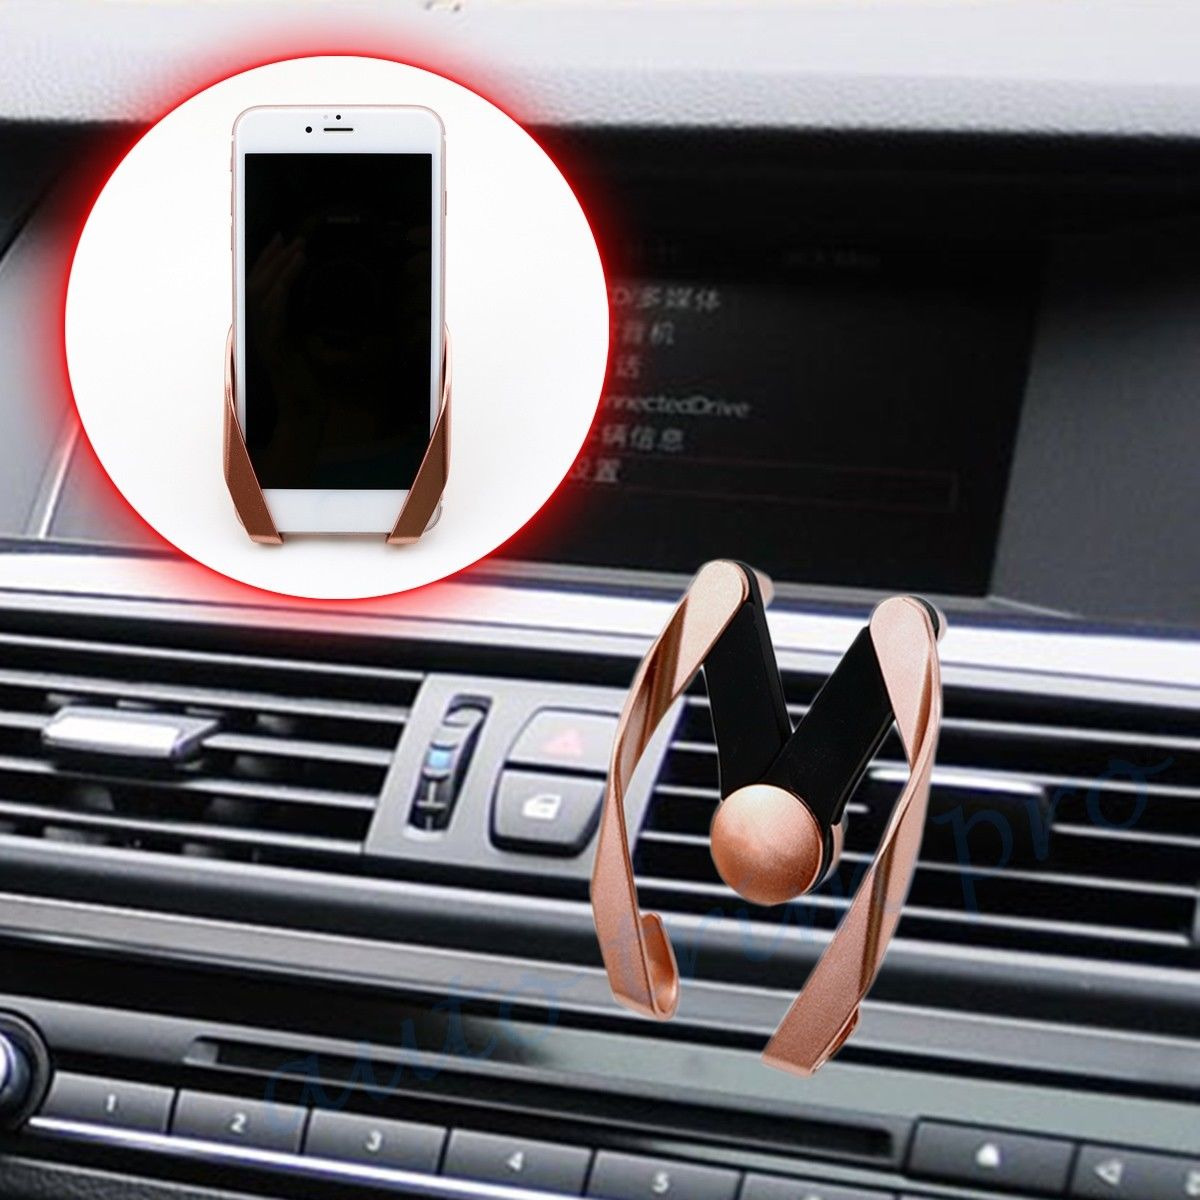 Fashion Vehicle Car Rose Gold Cell Phone GPS Holder Cradle Stand Bracket Adjust Air Vent Mount Universal Accessories Trim